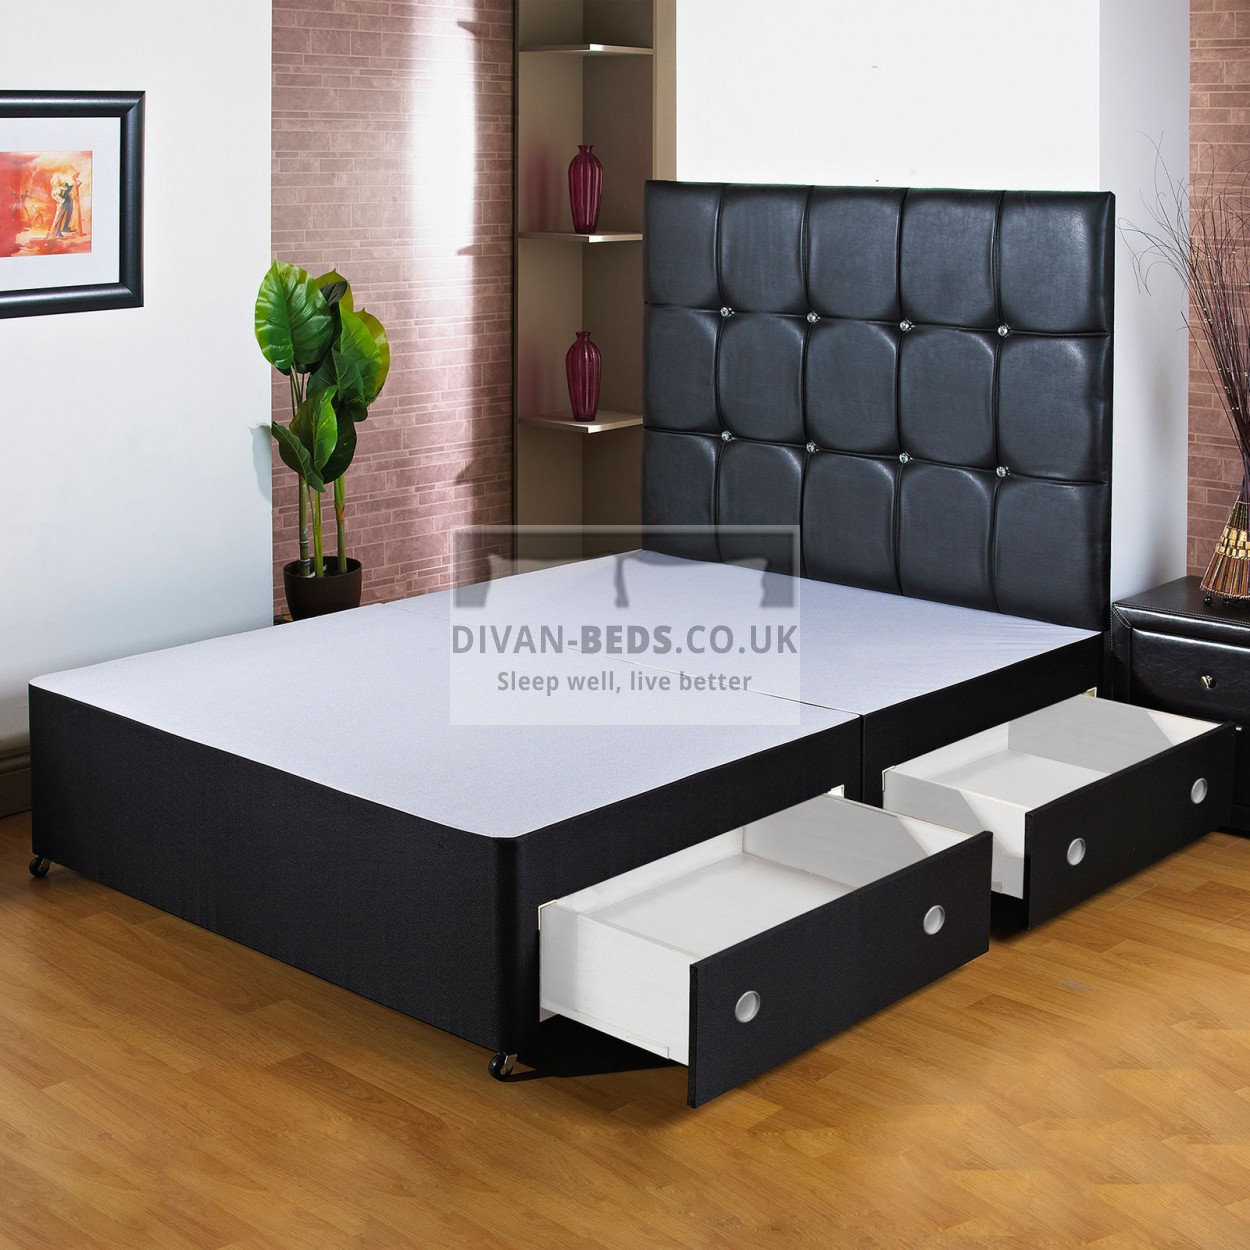 Divan Beds Cheap York Black Divan Bed Base With Headboard Options Guaranteed